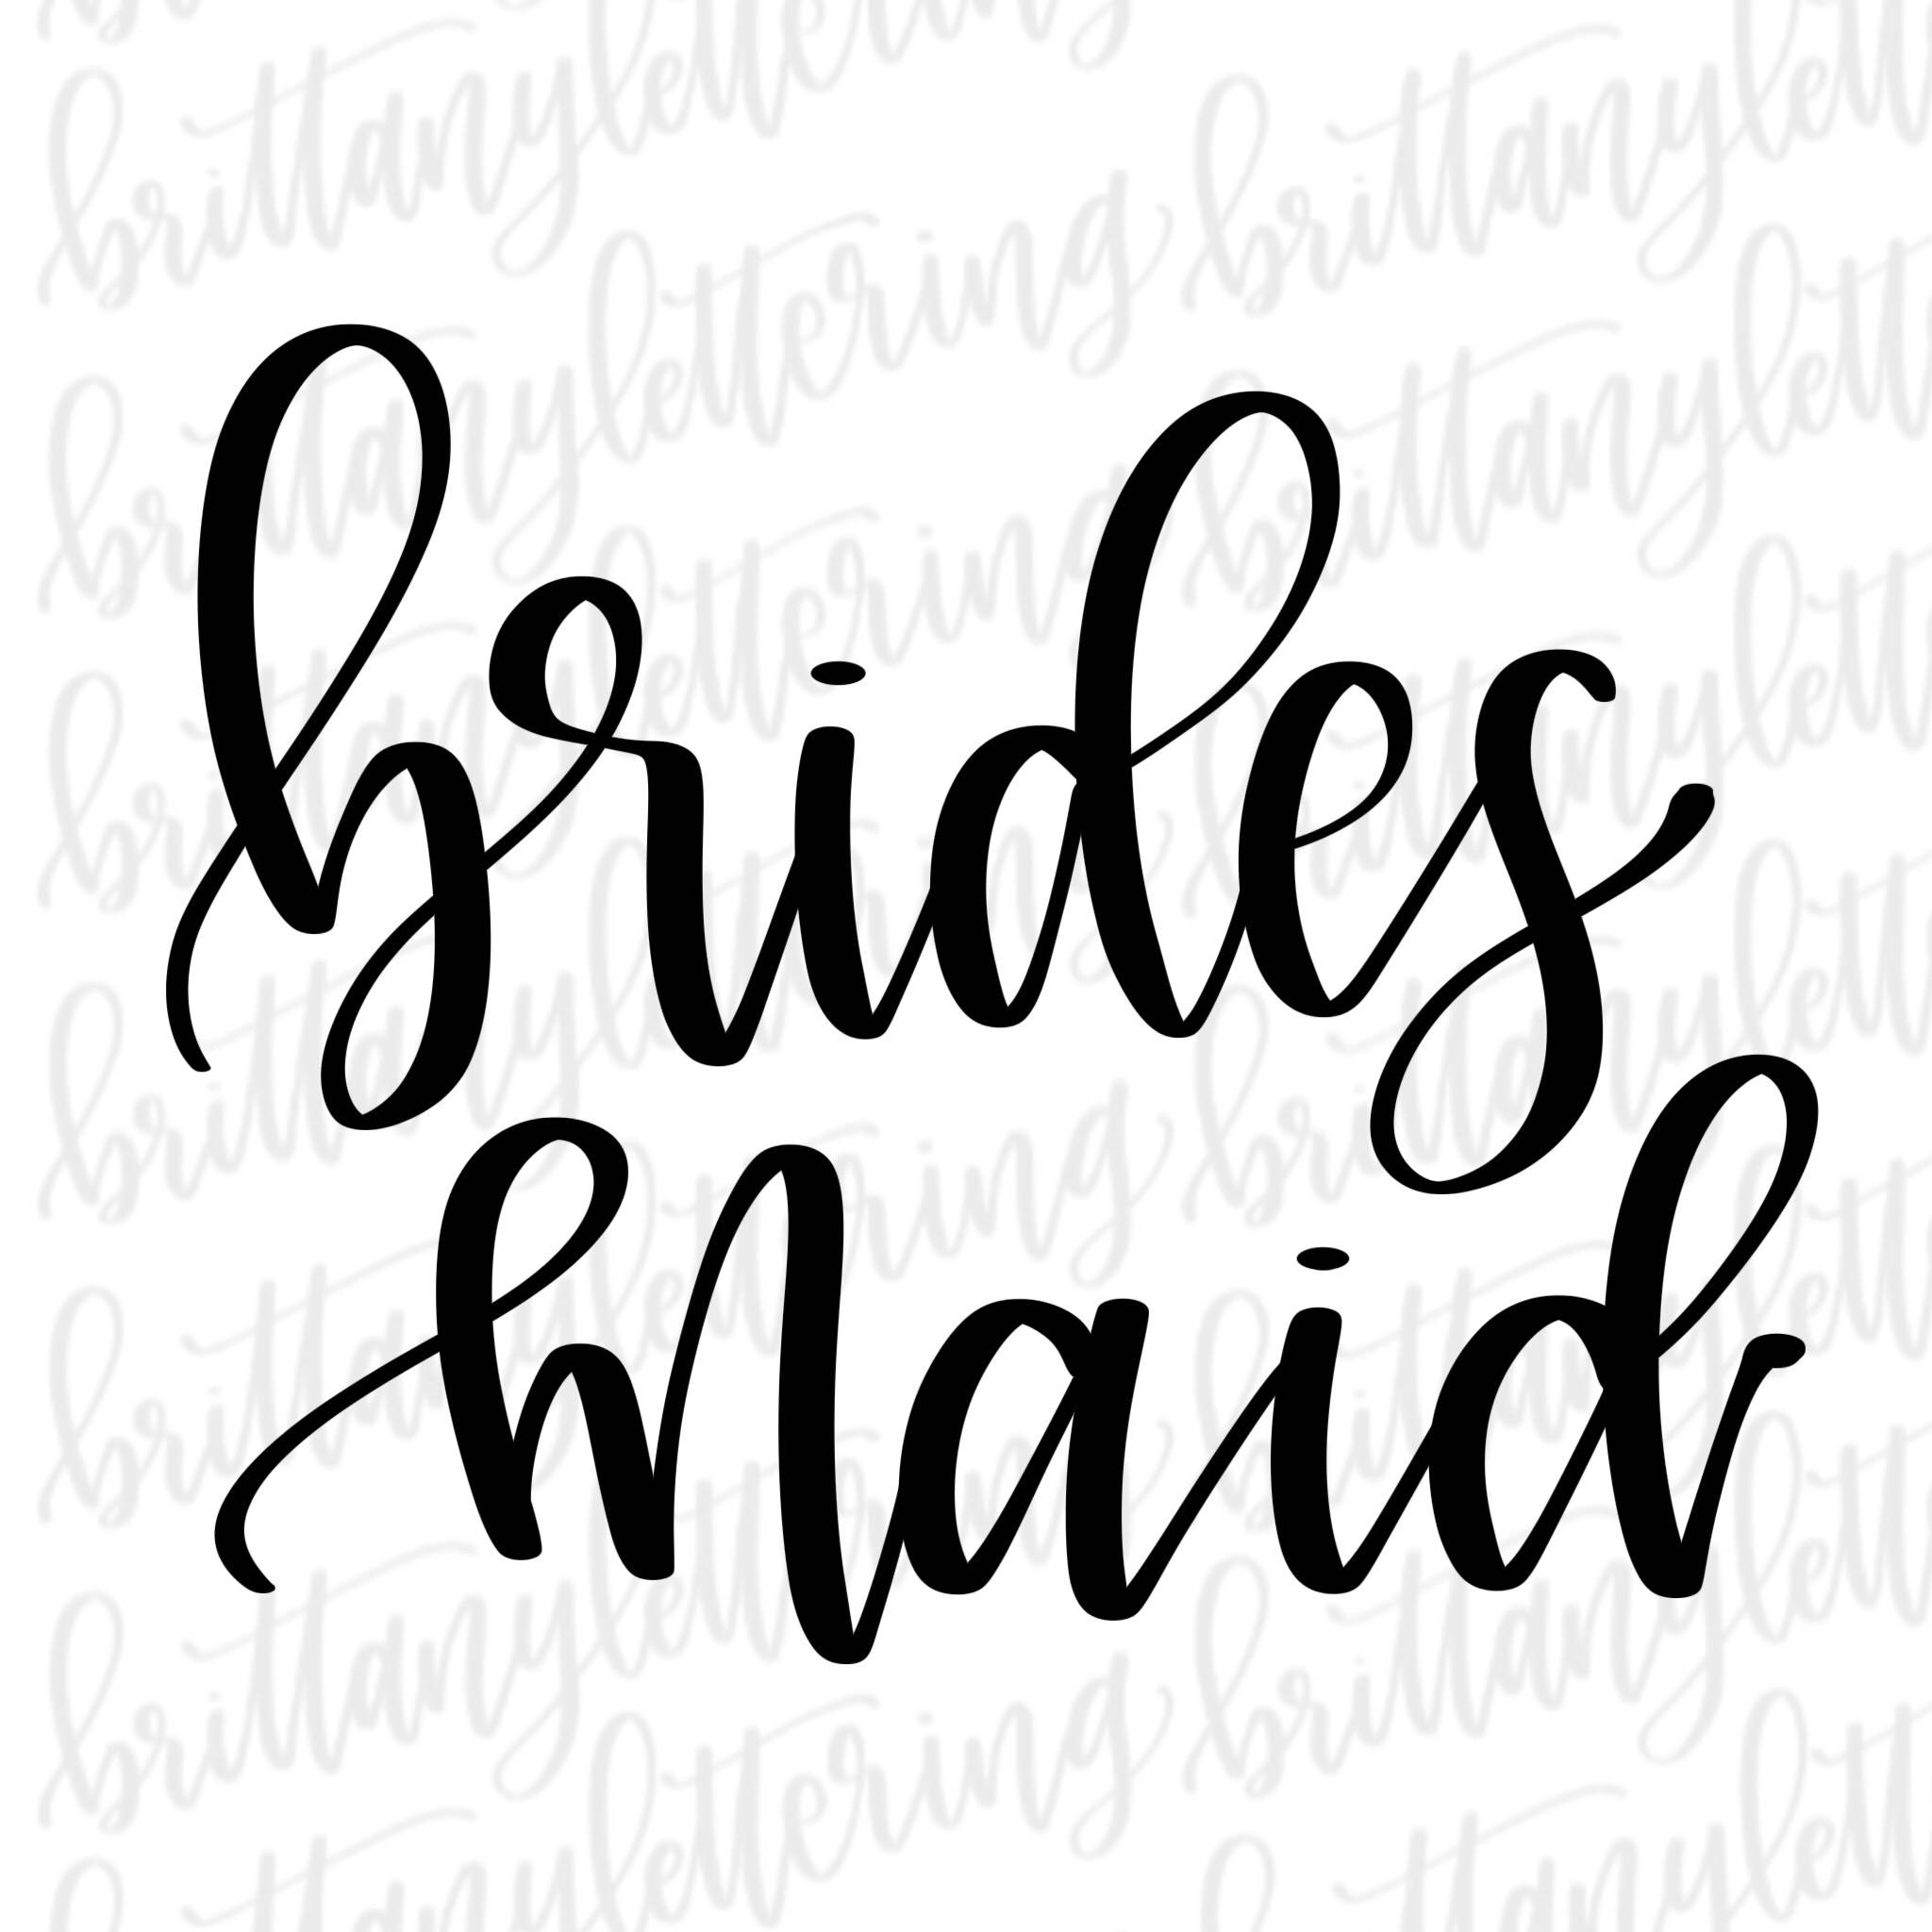 Bridesmaid clipart free image black and white stock Collection of Bridesmaid clipart | Free download best Bridesmaid ... image black and white stock